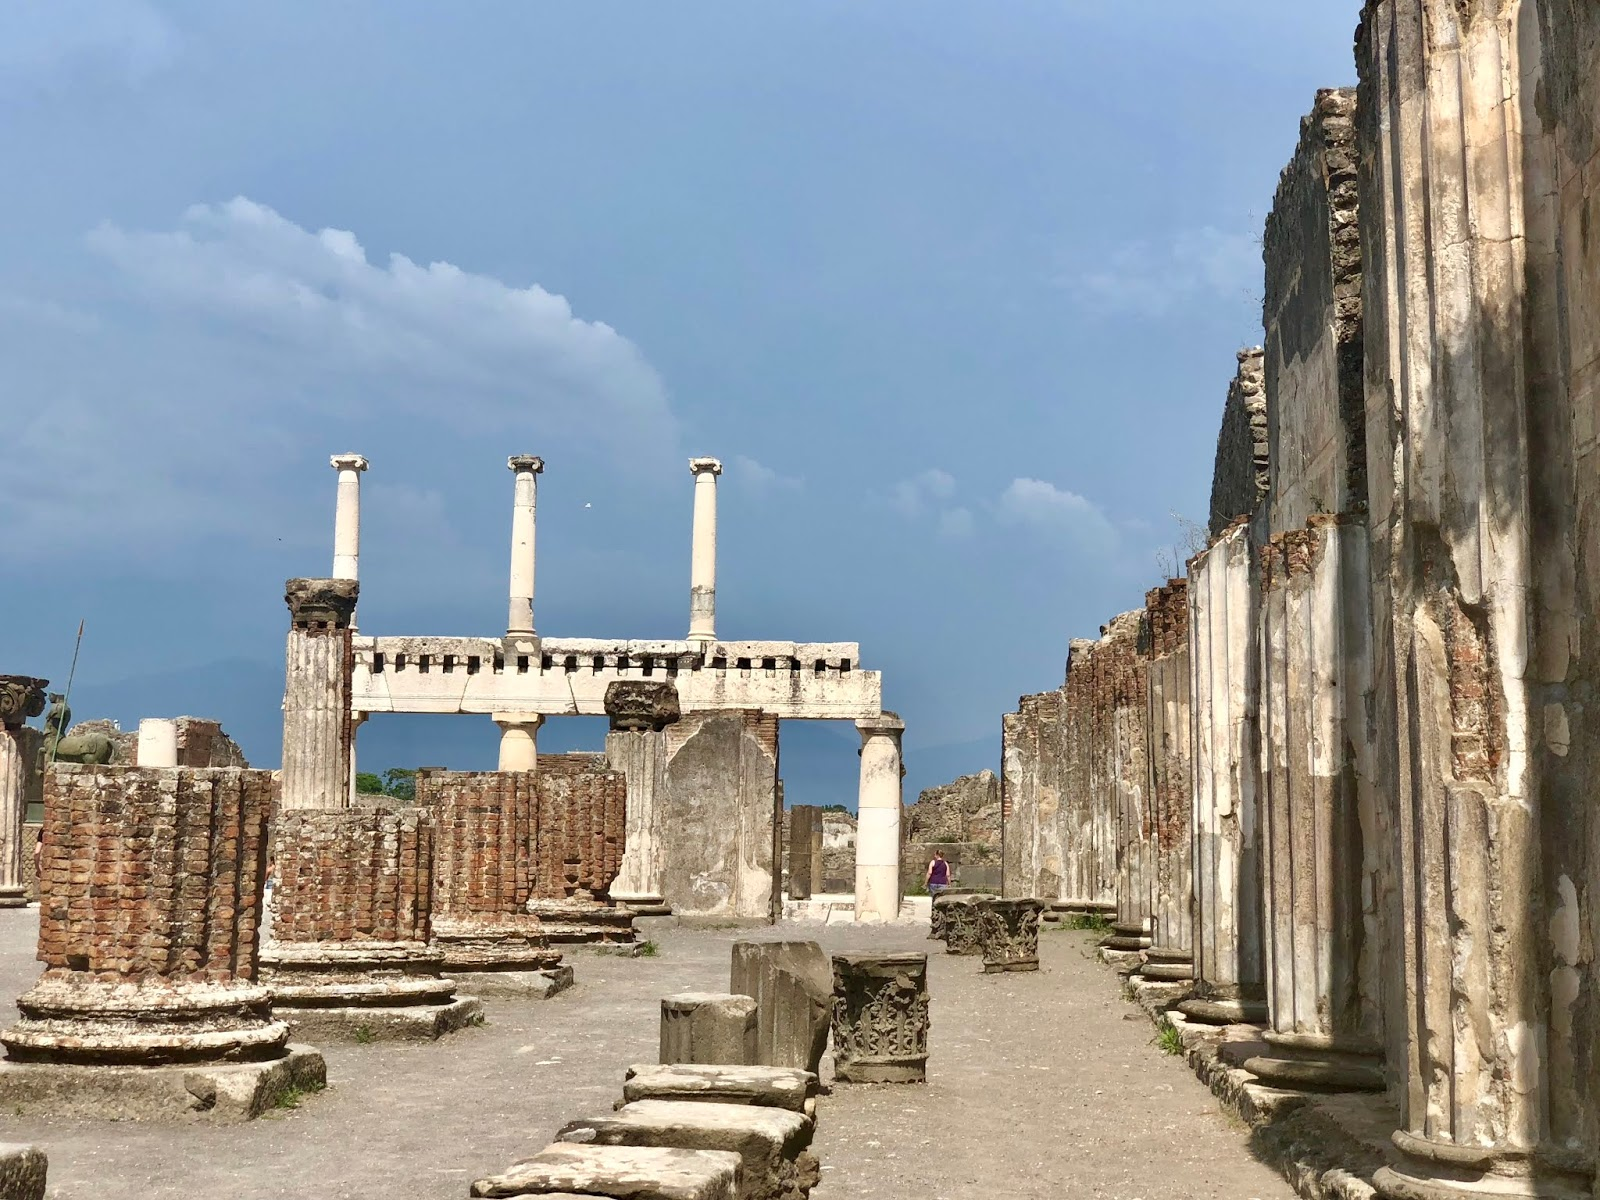 History Lesson Coming Up The City Of Pompei Was Mostly